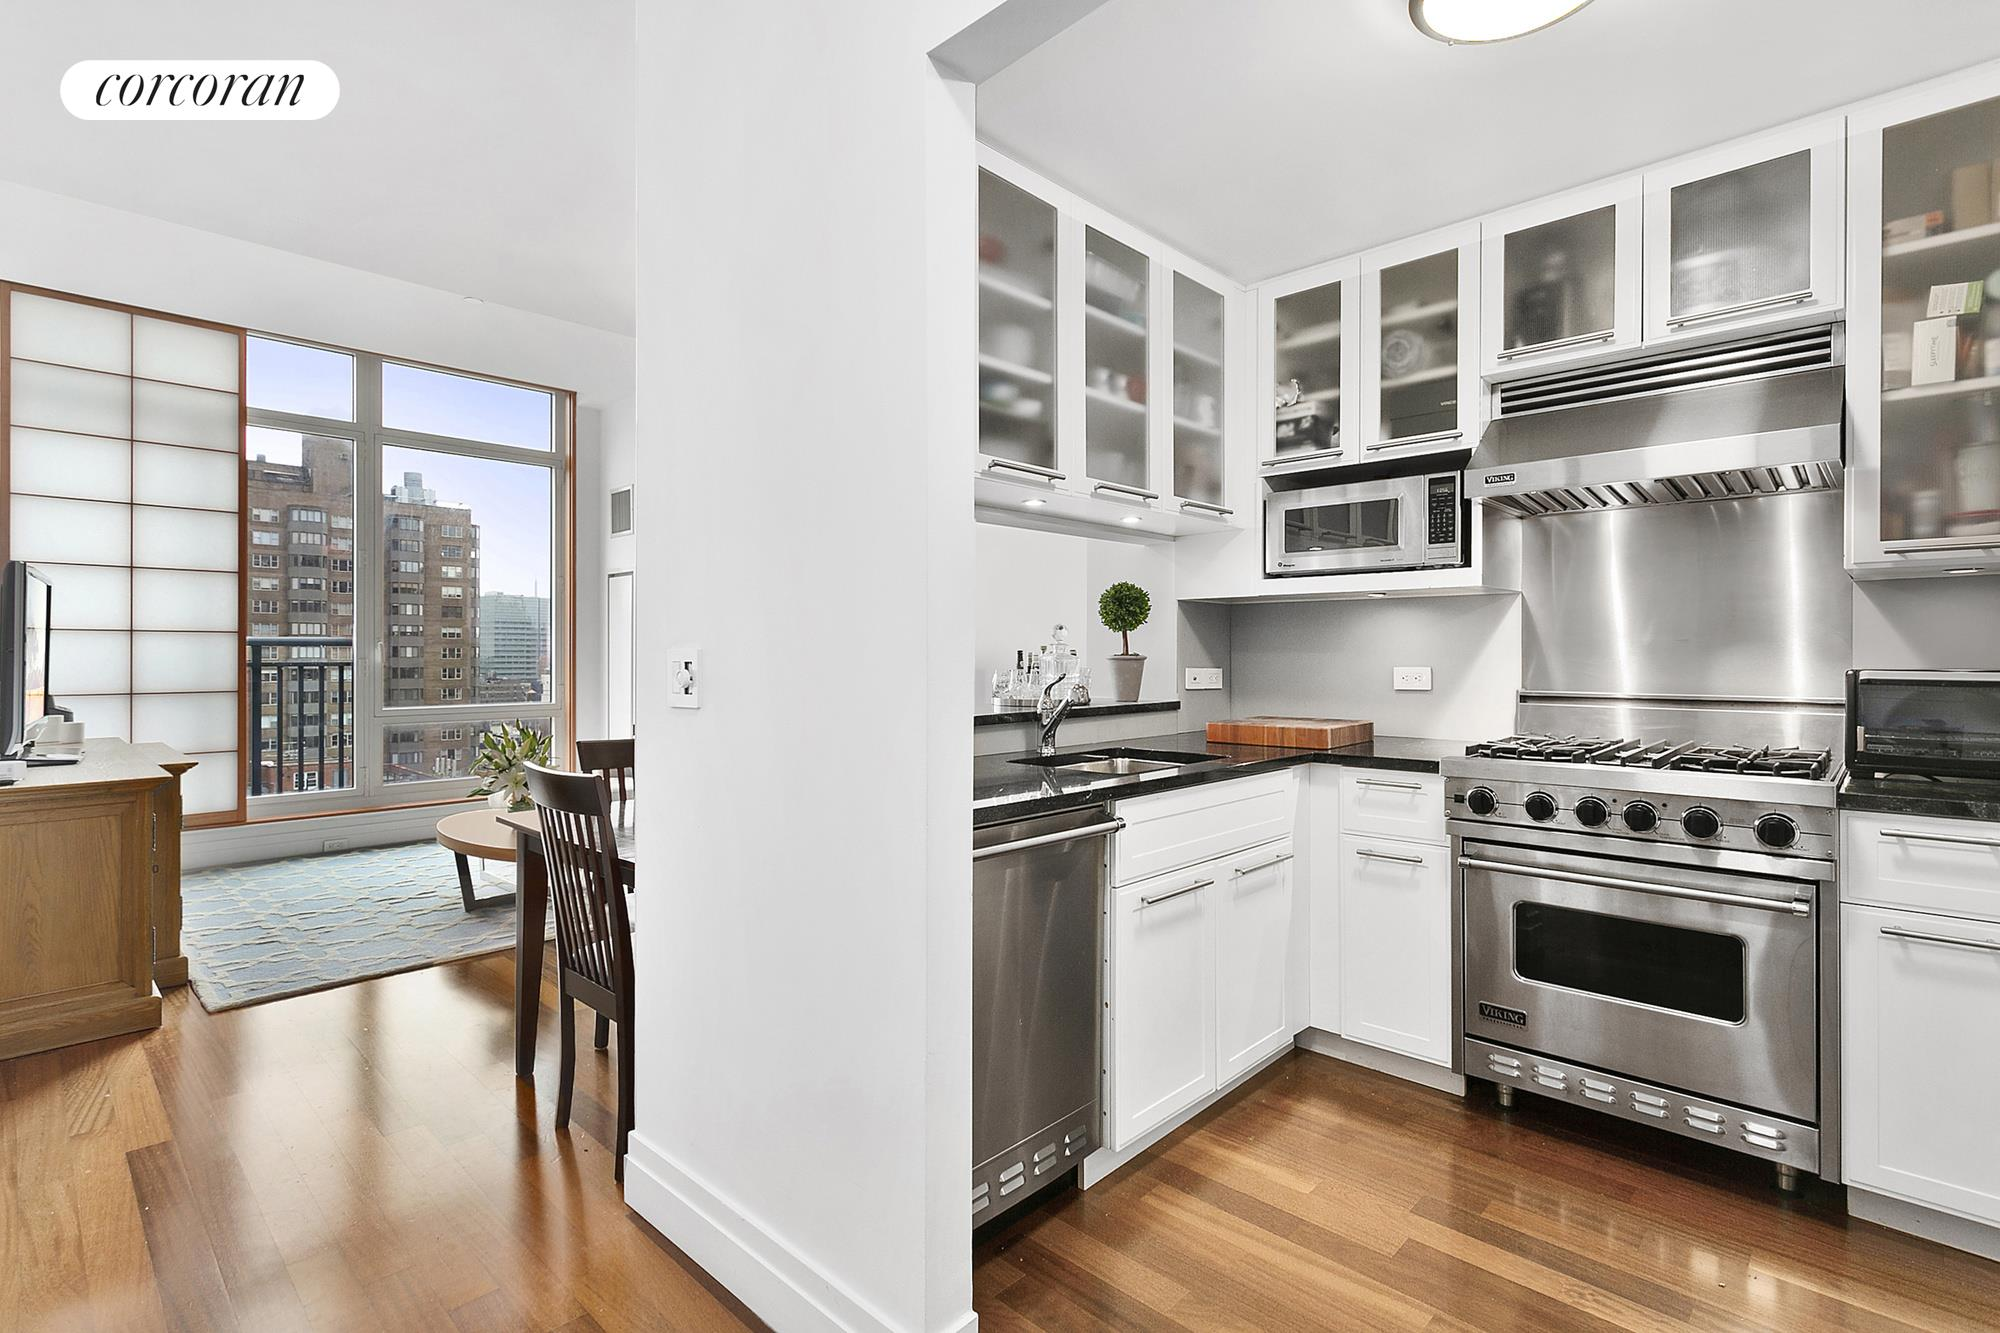 Corcoran, 45 Park Avenue, Apt  1605, Murray Hill Real Estate